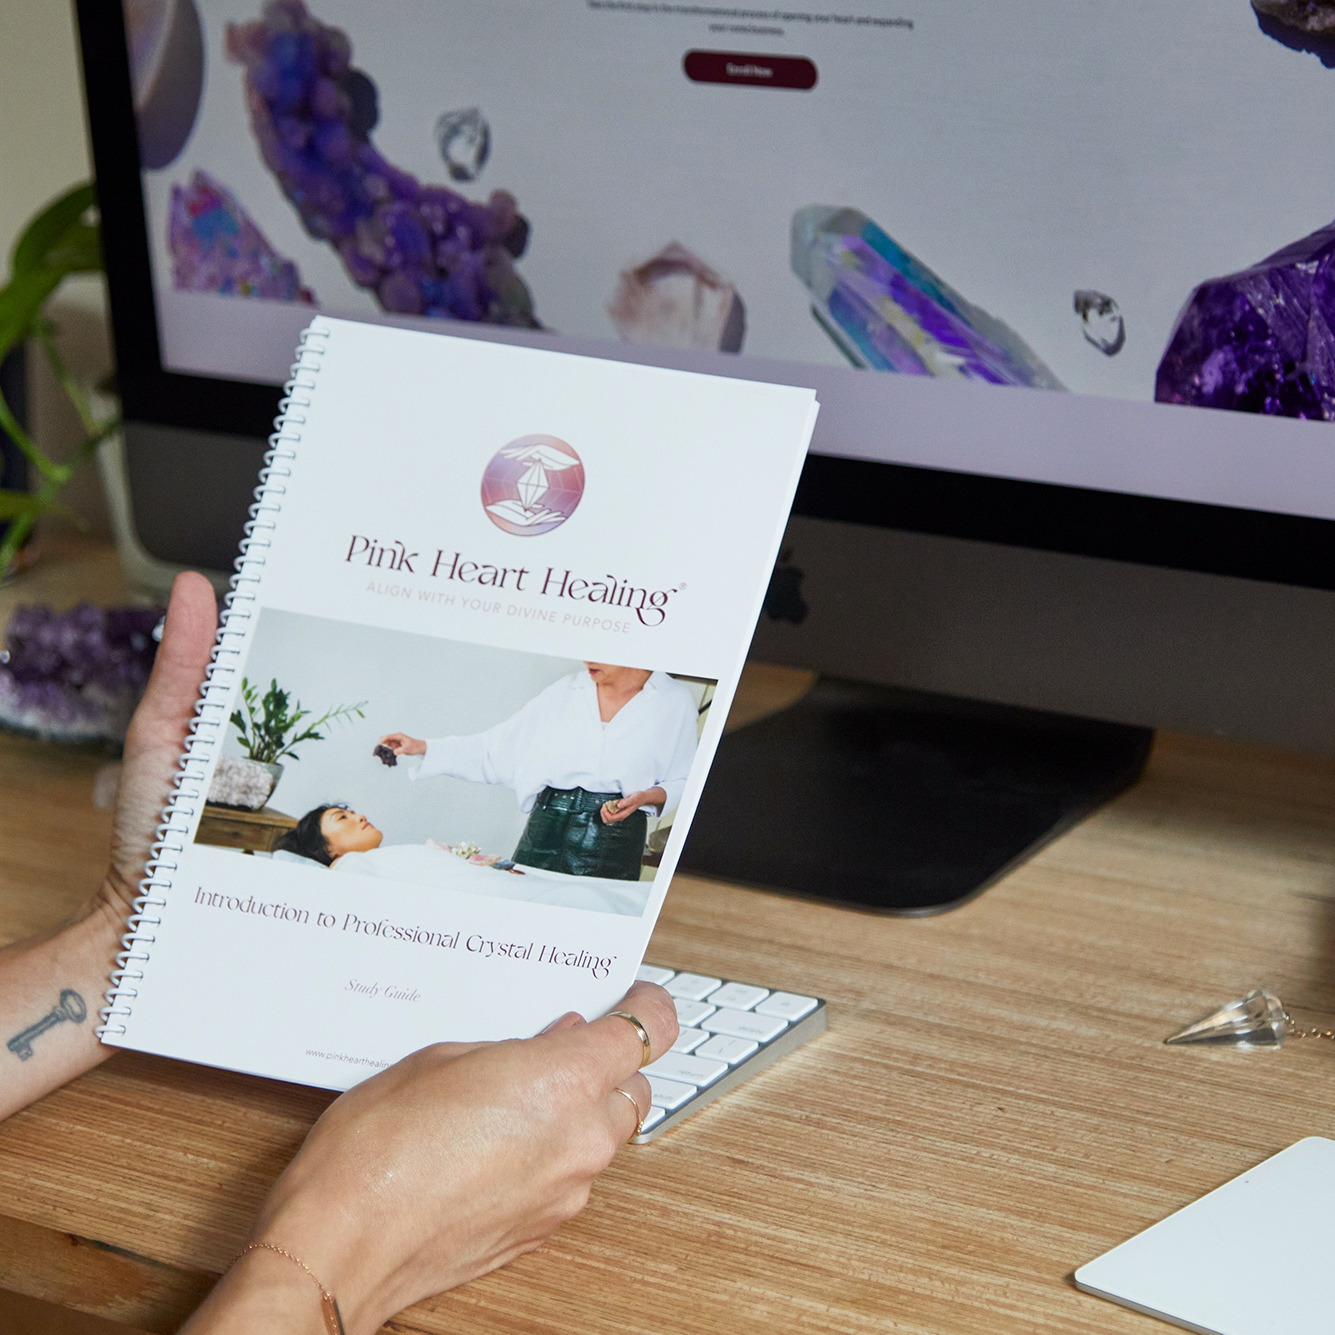 Introduction to Professional Crystal Healing Bundle